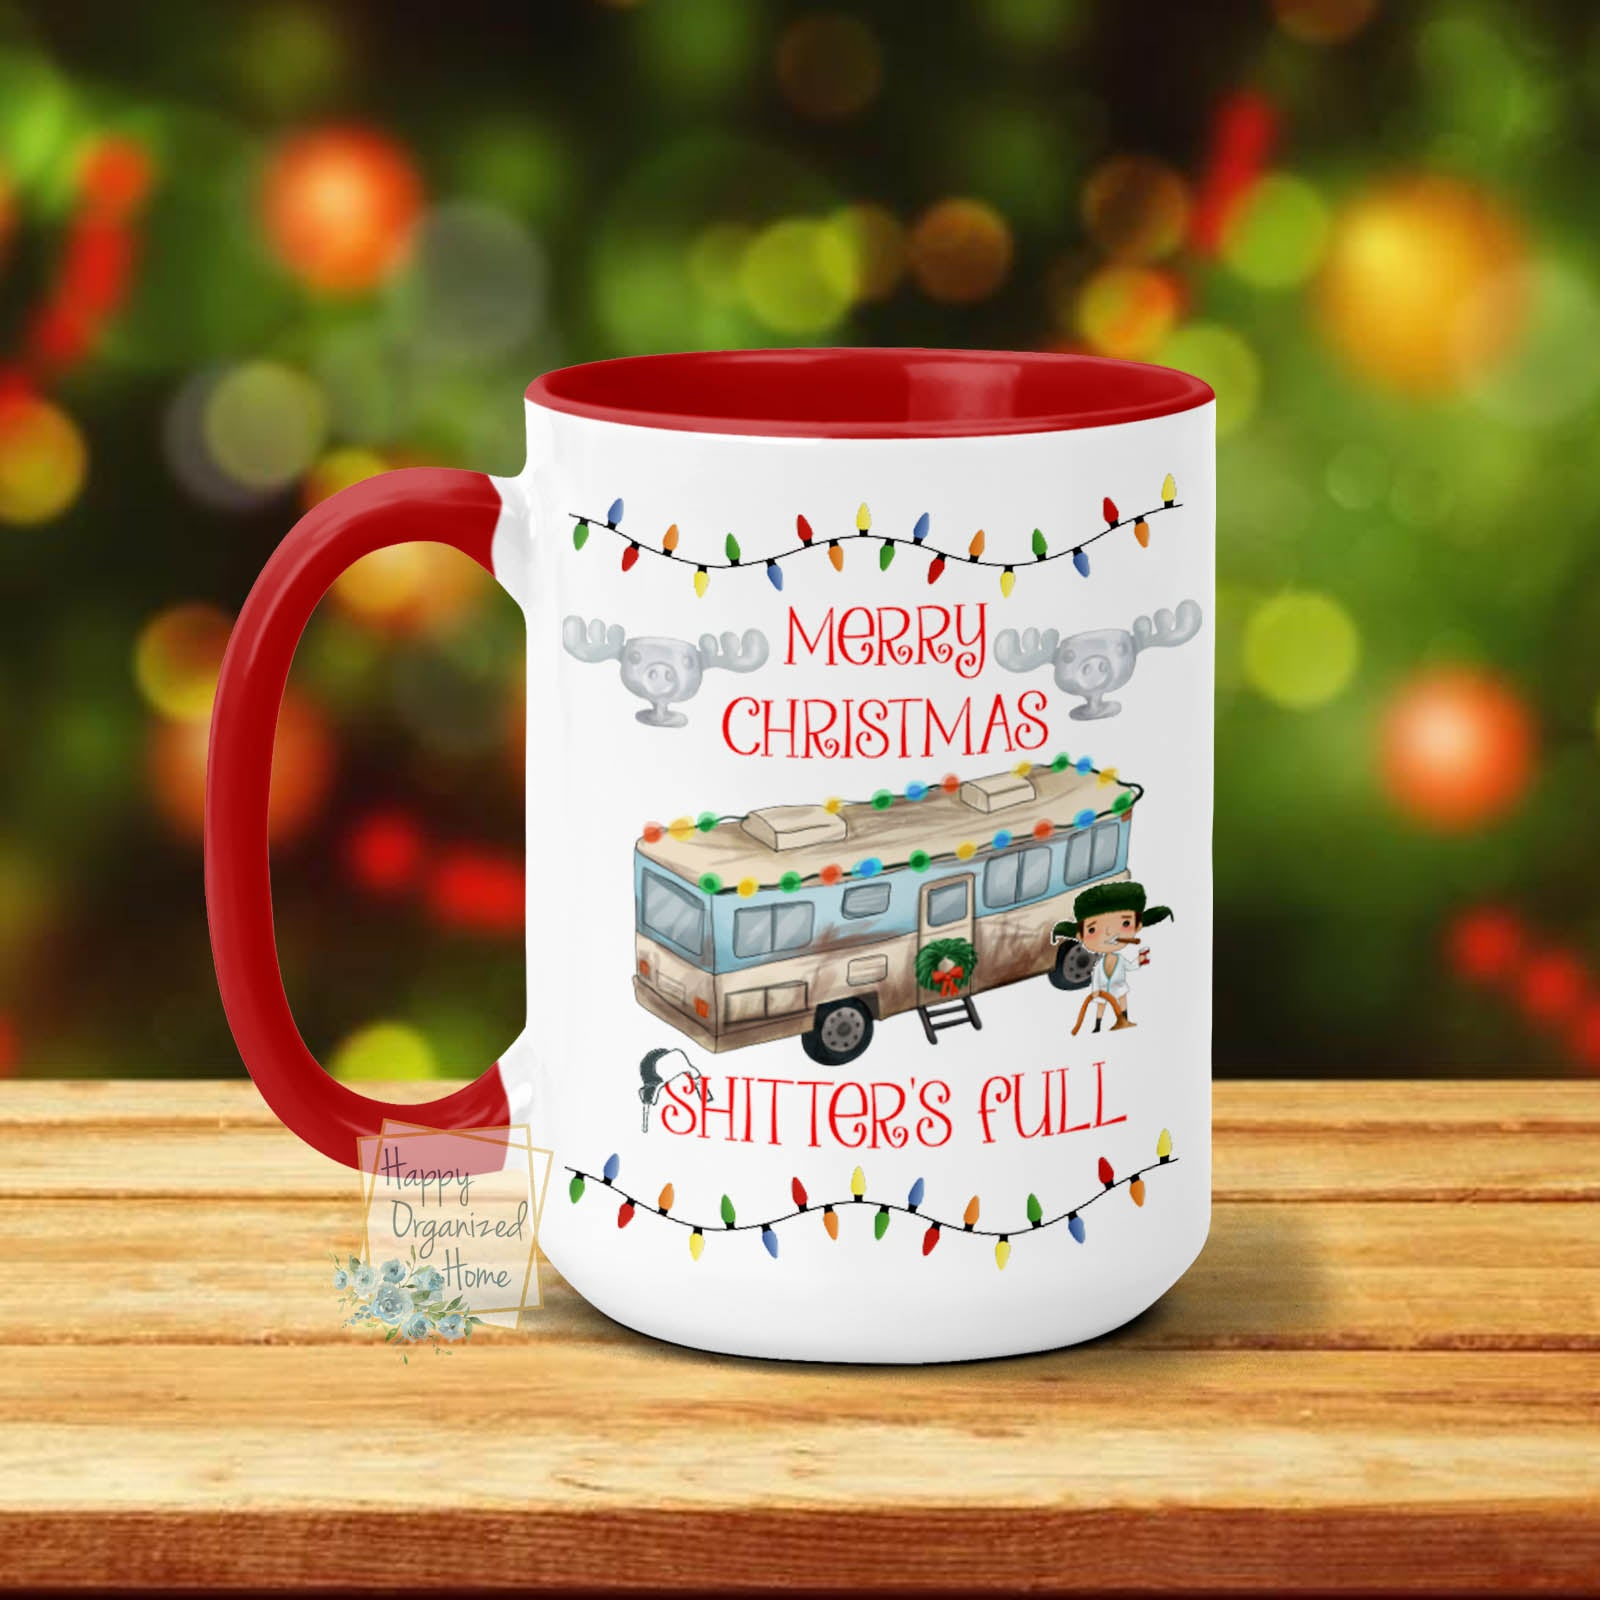 Merry Christmas Shitter's Full  - Christmas Mug